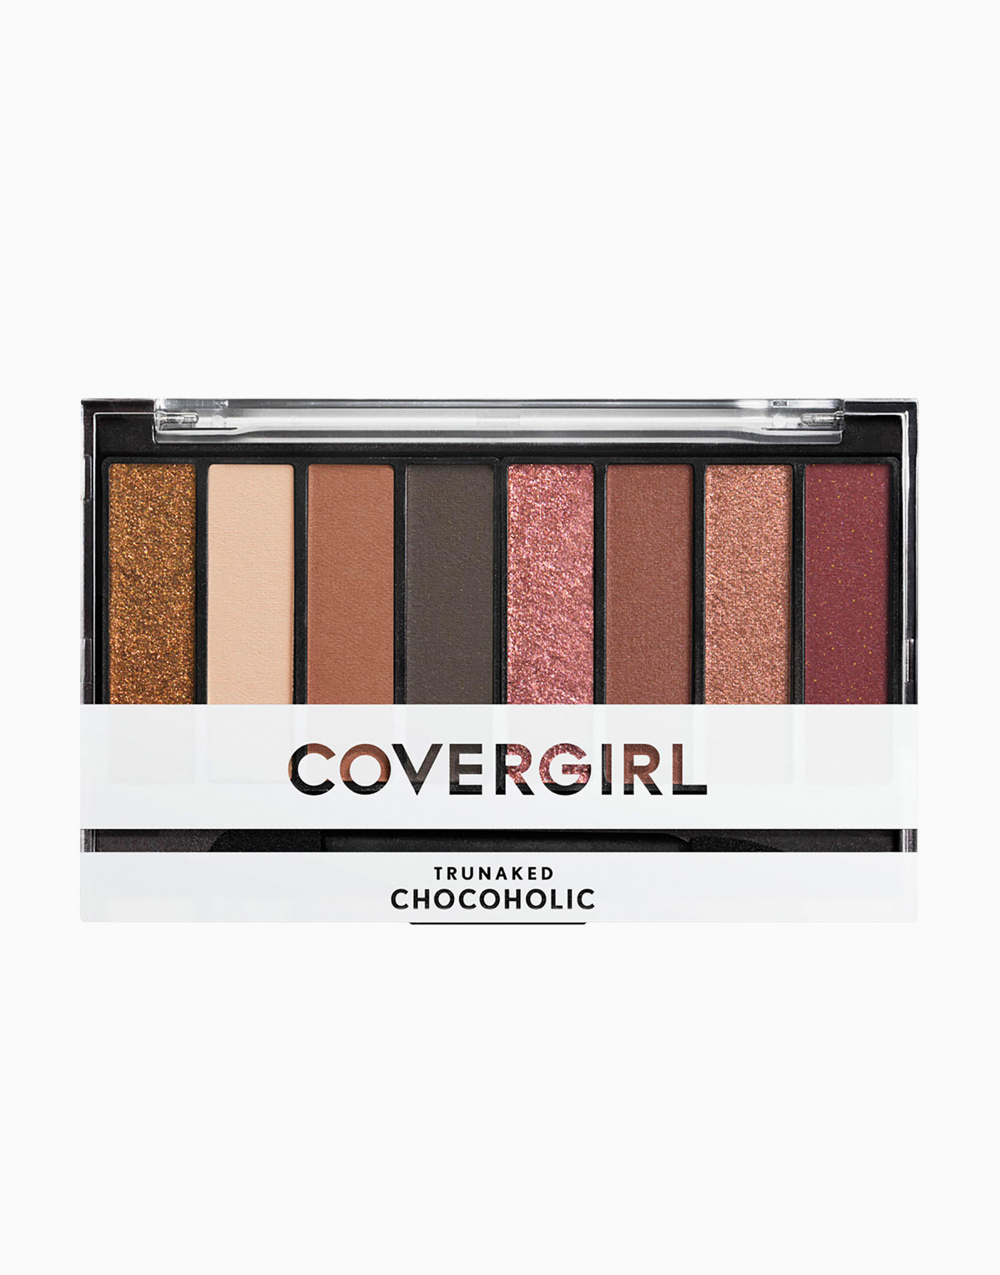 TruNaked Eyeshadow Palette by CoverGirl | Chocoholic